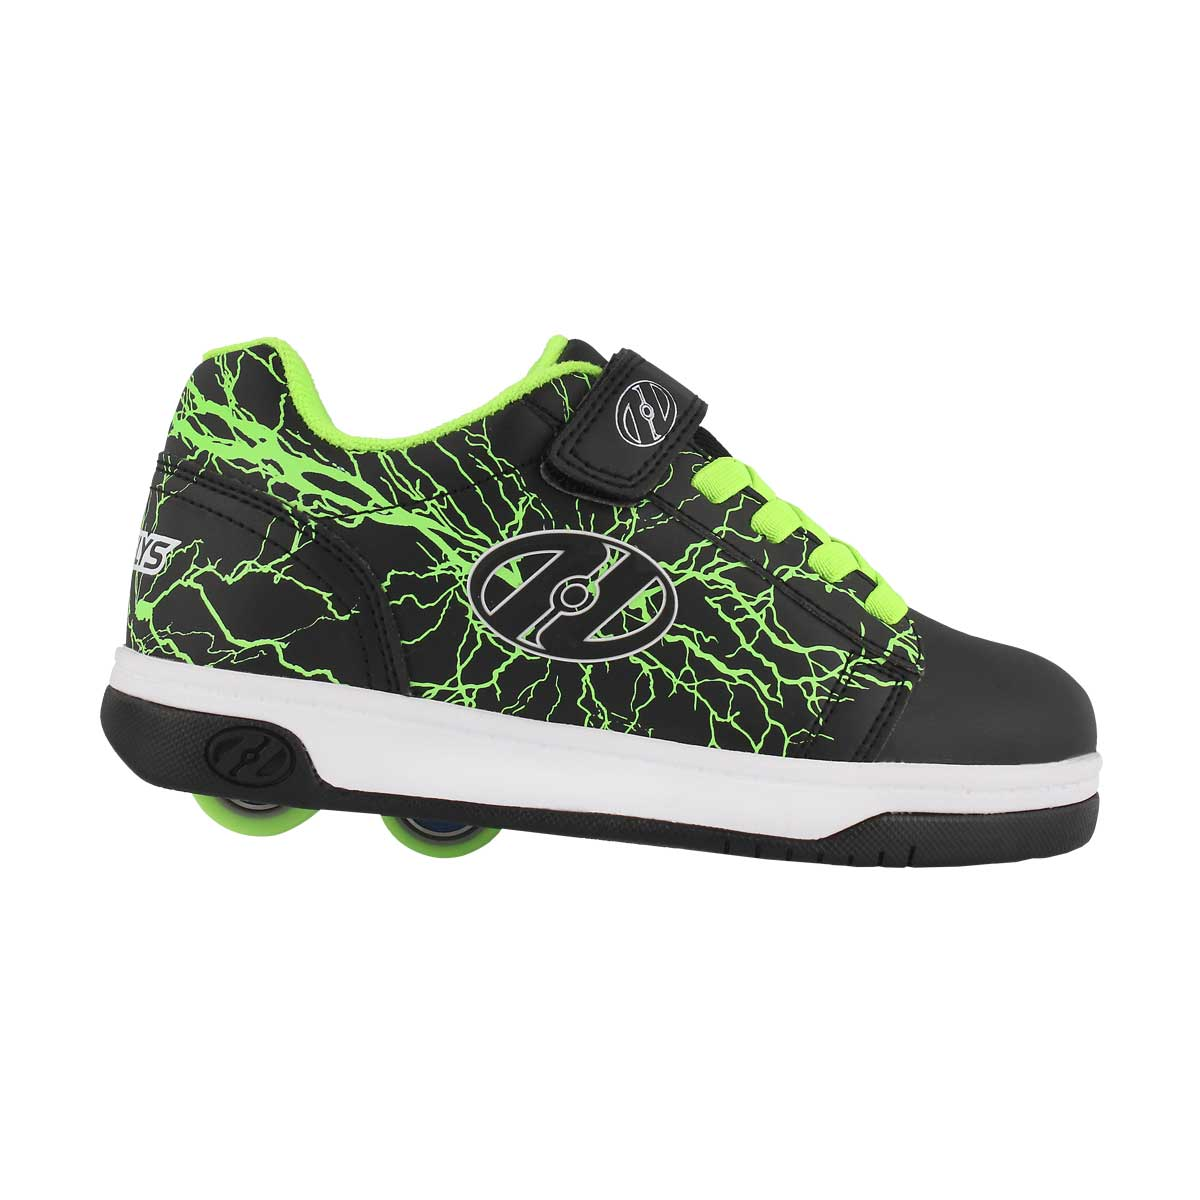 Bys Dual Up x2 blk/yellow skate sneaker